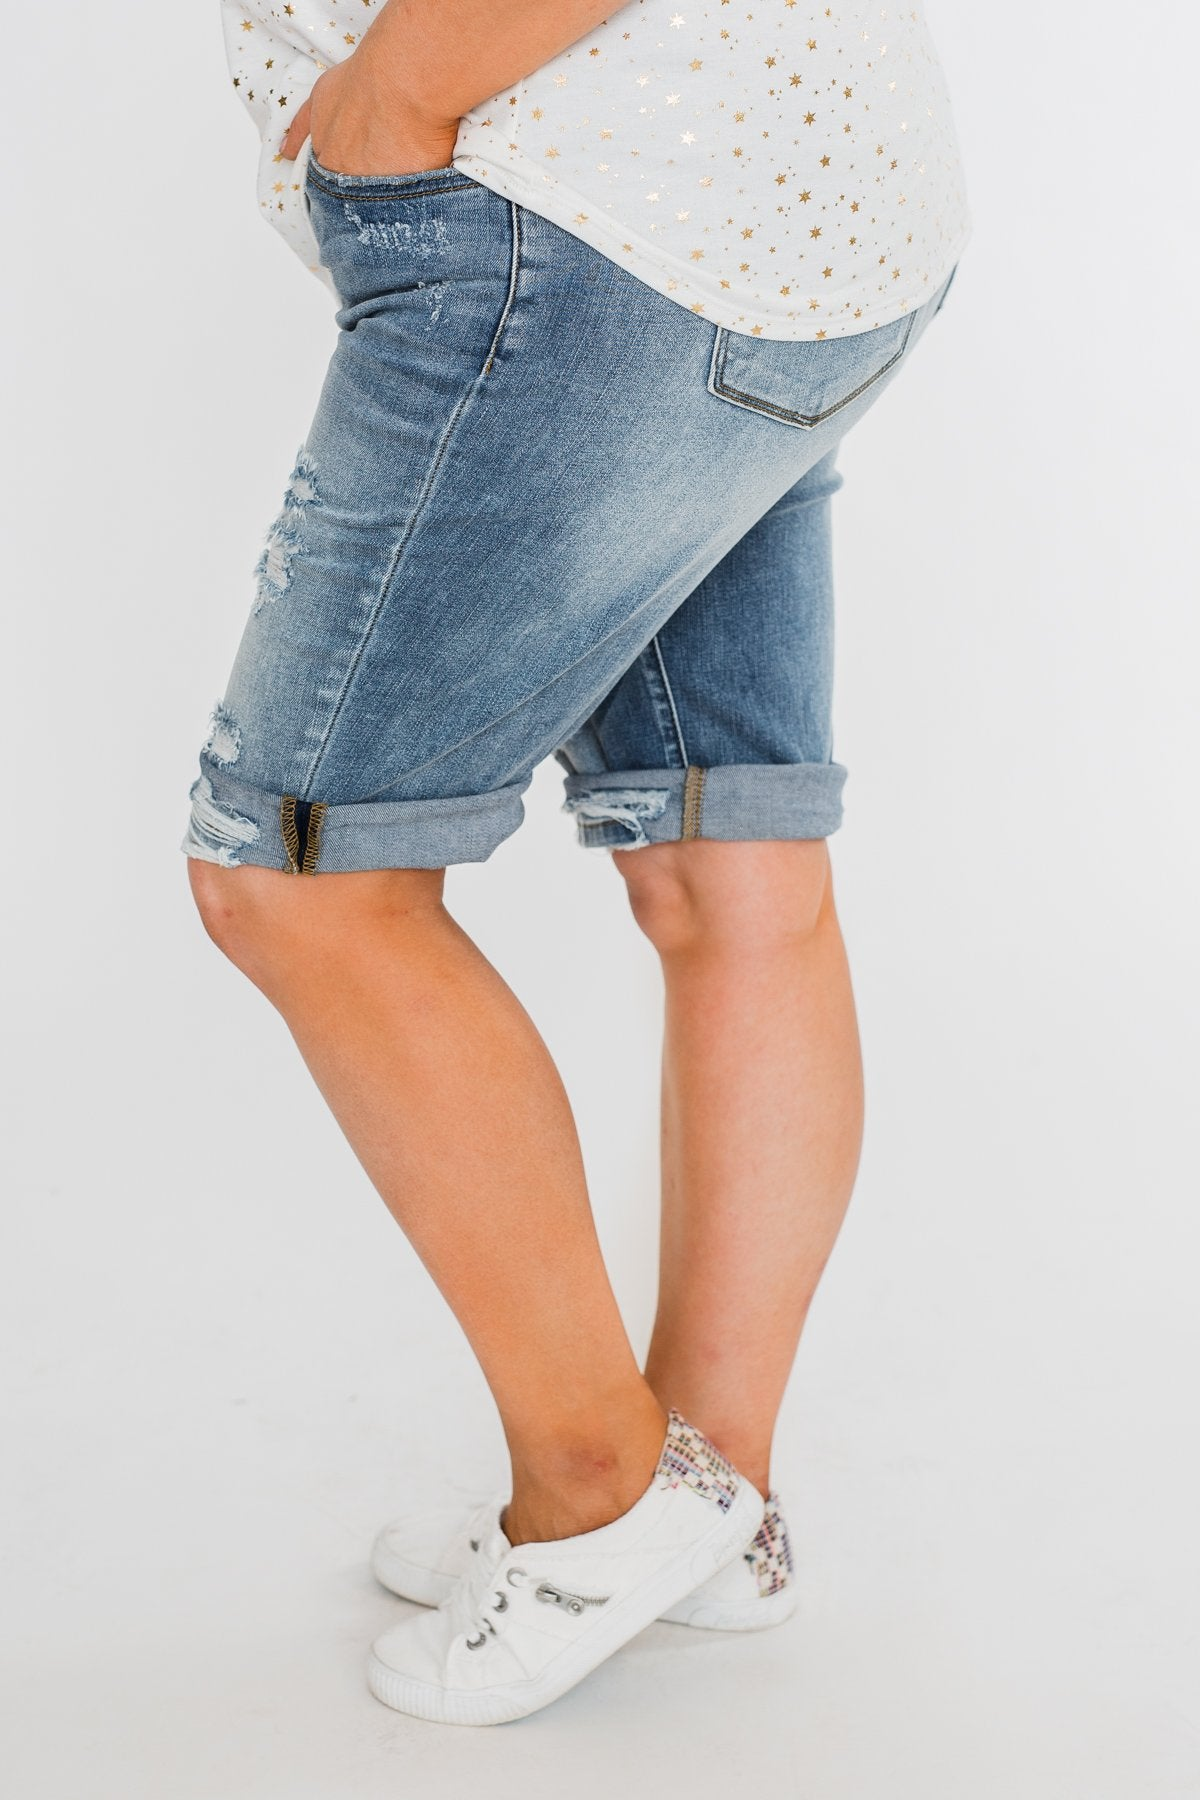 KanCan Distressed Bermuda Shorts- Ciara Wash